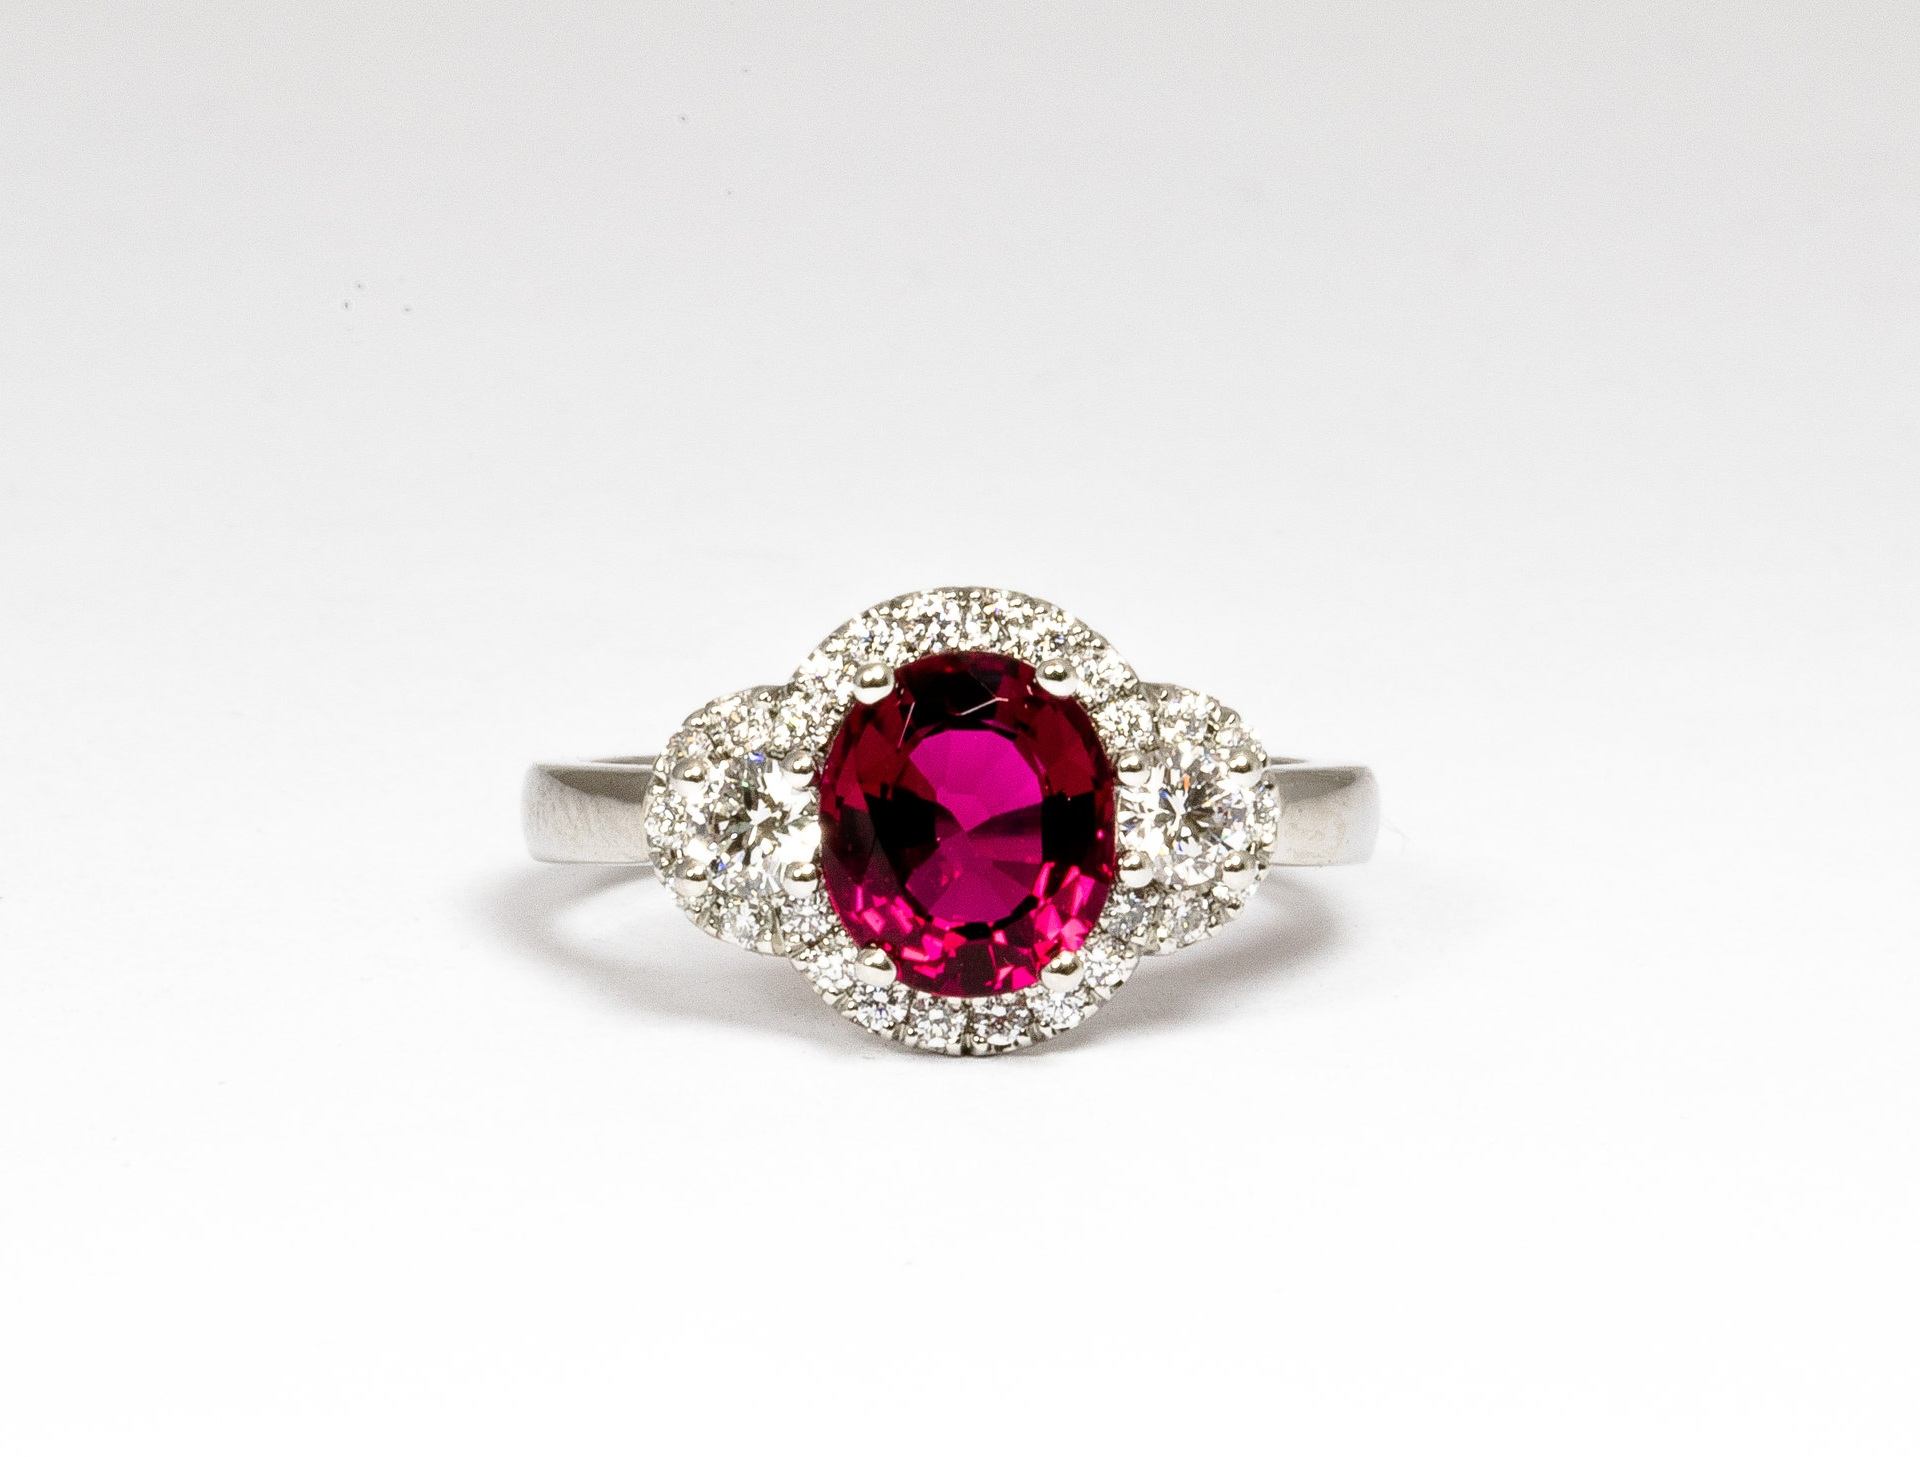 Platinum mounted diamond and rubellite set cluster ring. Made in Chichester, England.